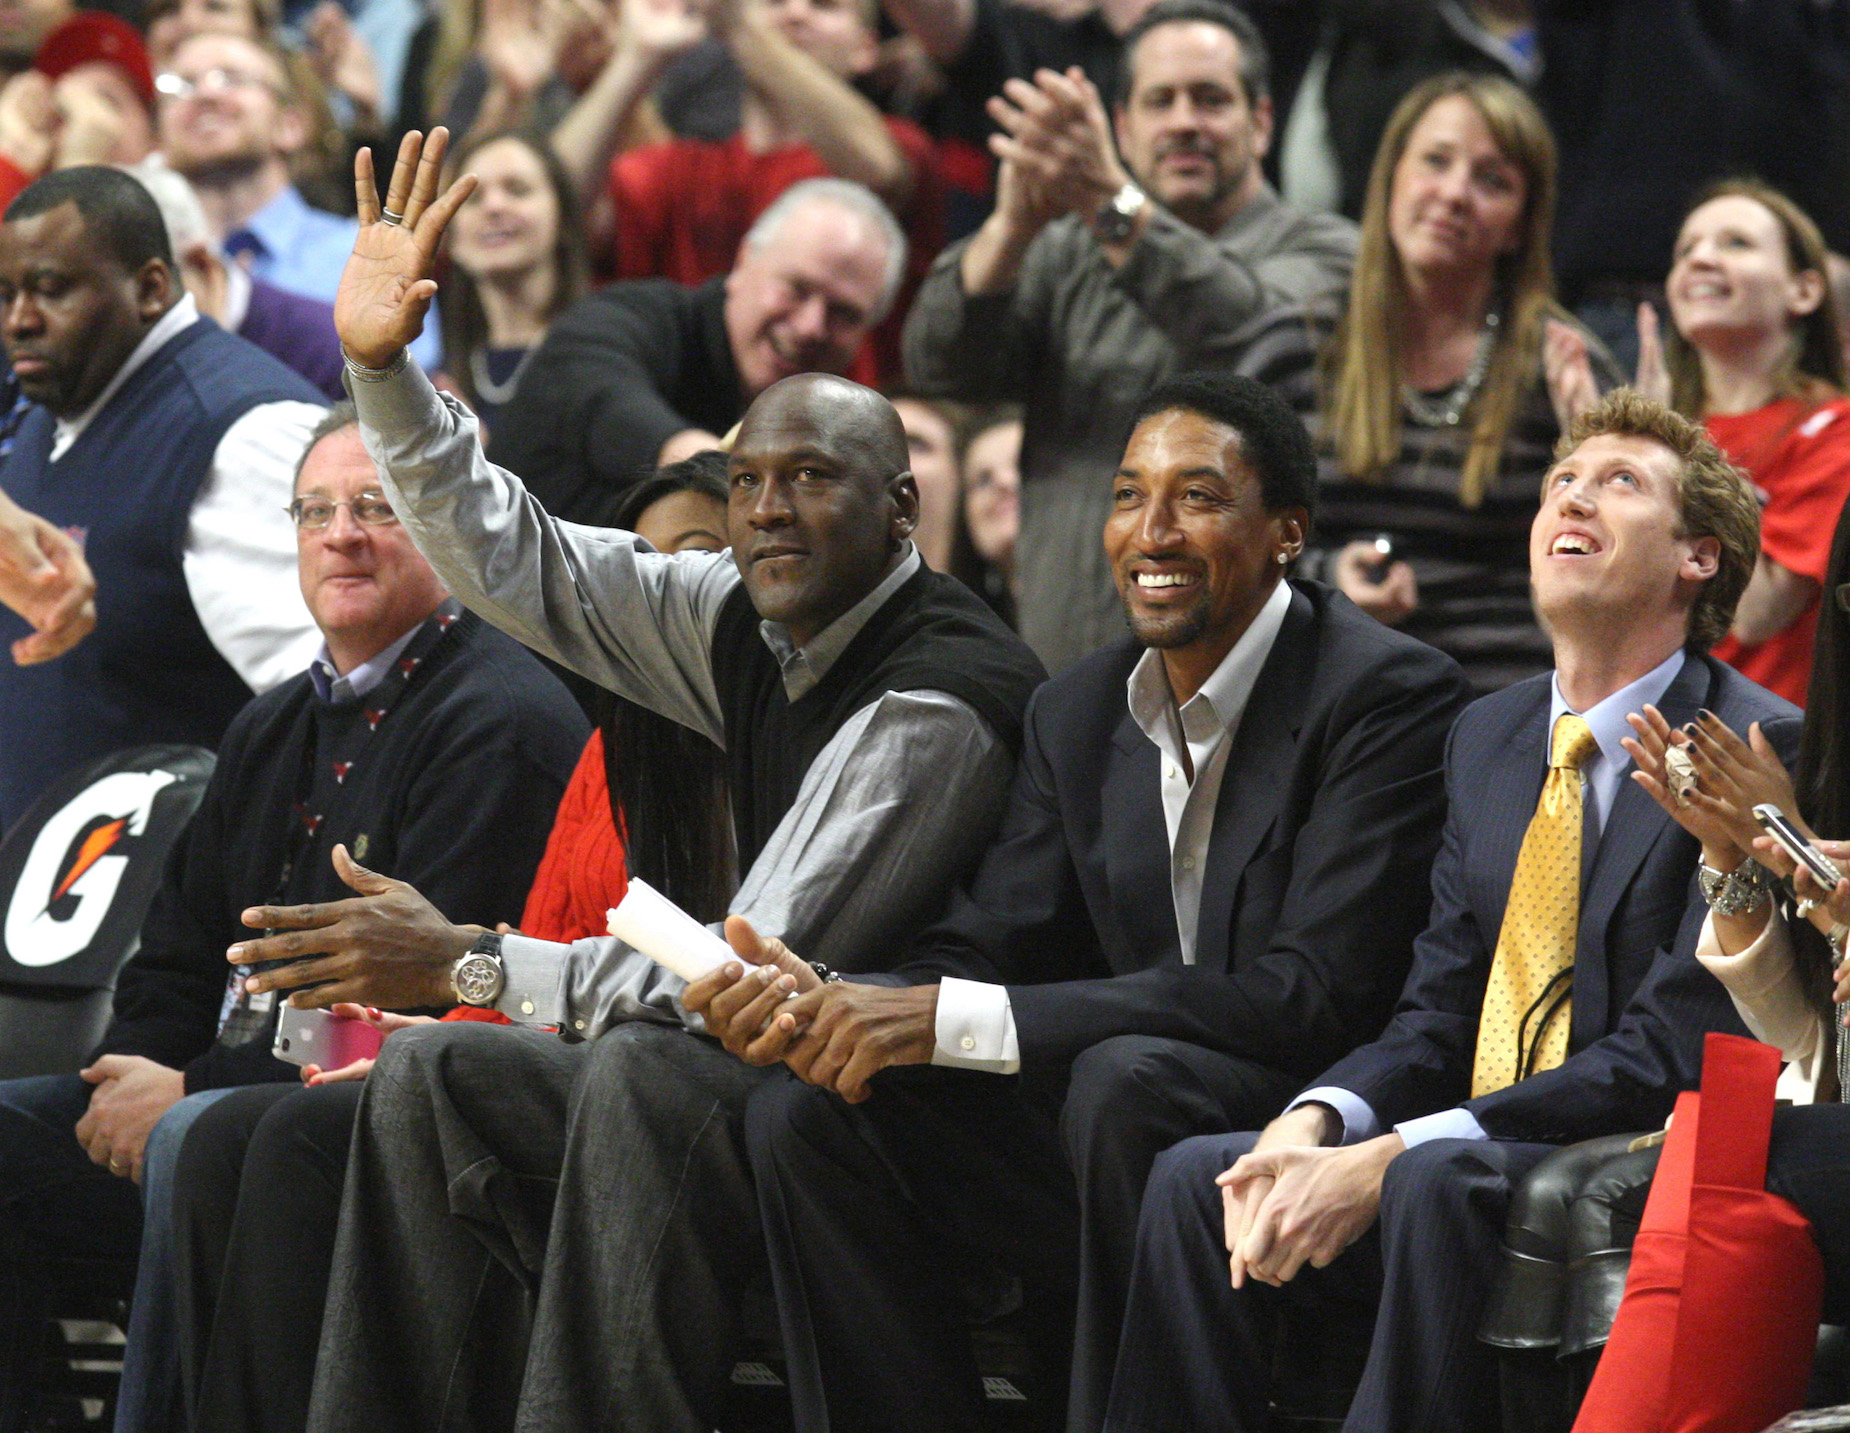 Scottie Pippen and Michael Jordan can still command big money, even though they're no longer playing.